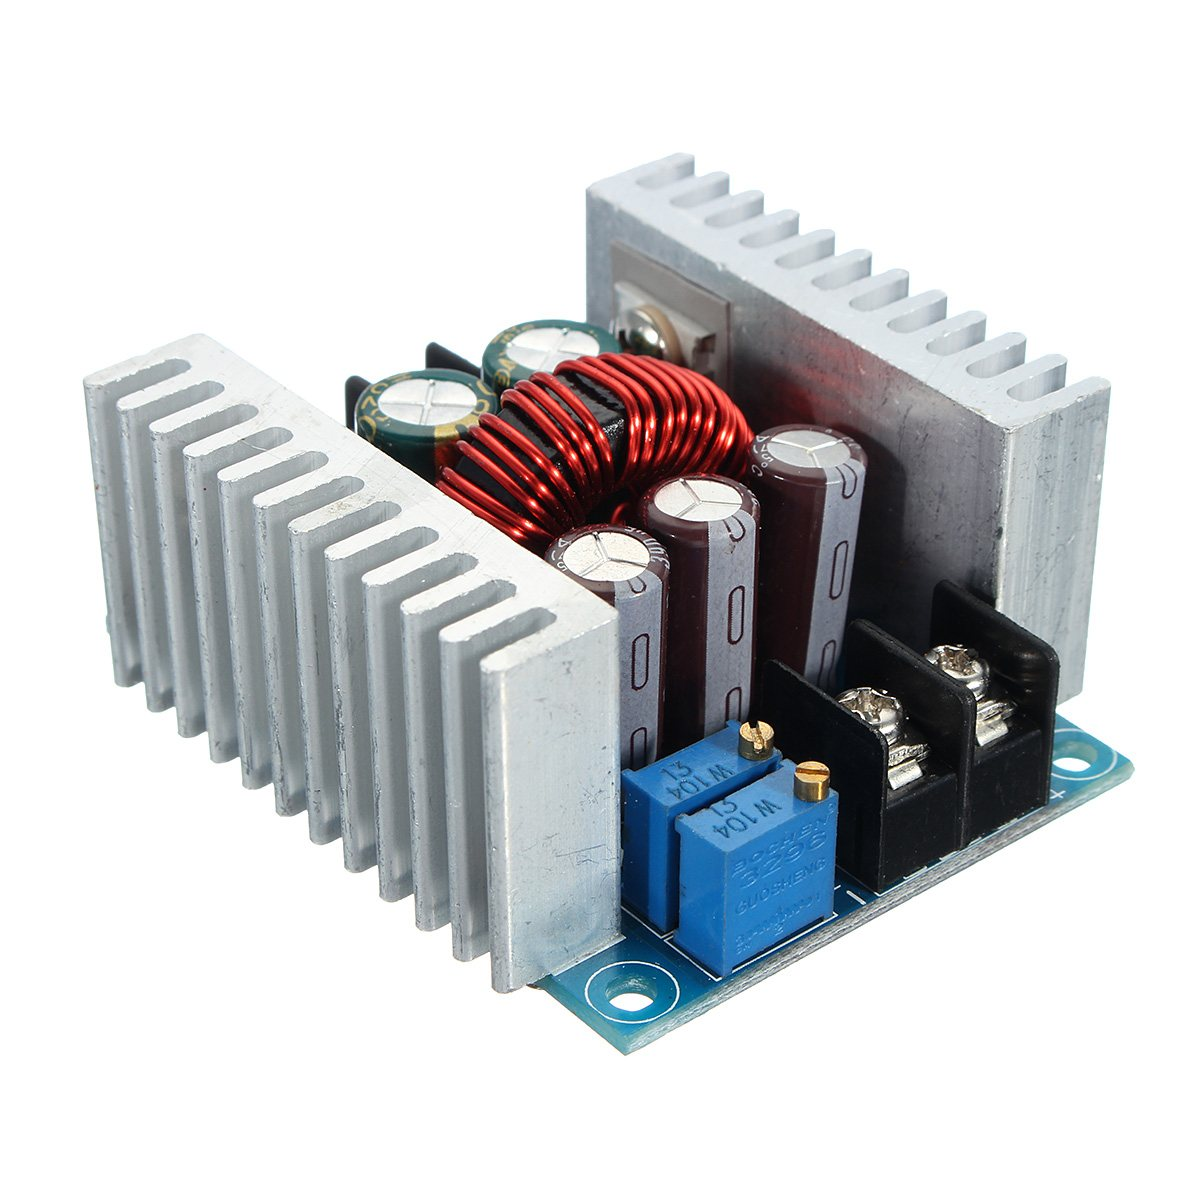 DC 6-40V To 1.2-36V 300W 20A Constant Current Adjustable Buck Converter Step-Down Module Board With Short Circuit Protection rs232 to rs485 converter with optical isolation passive interface protection